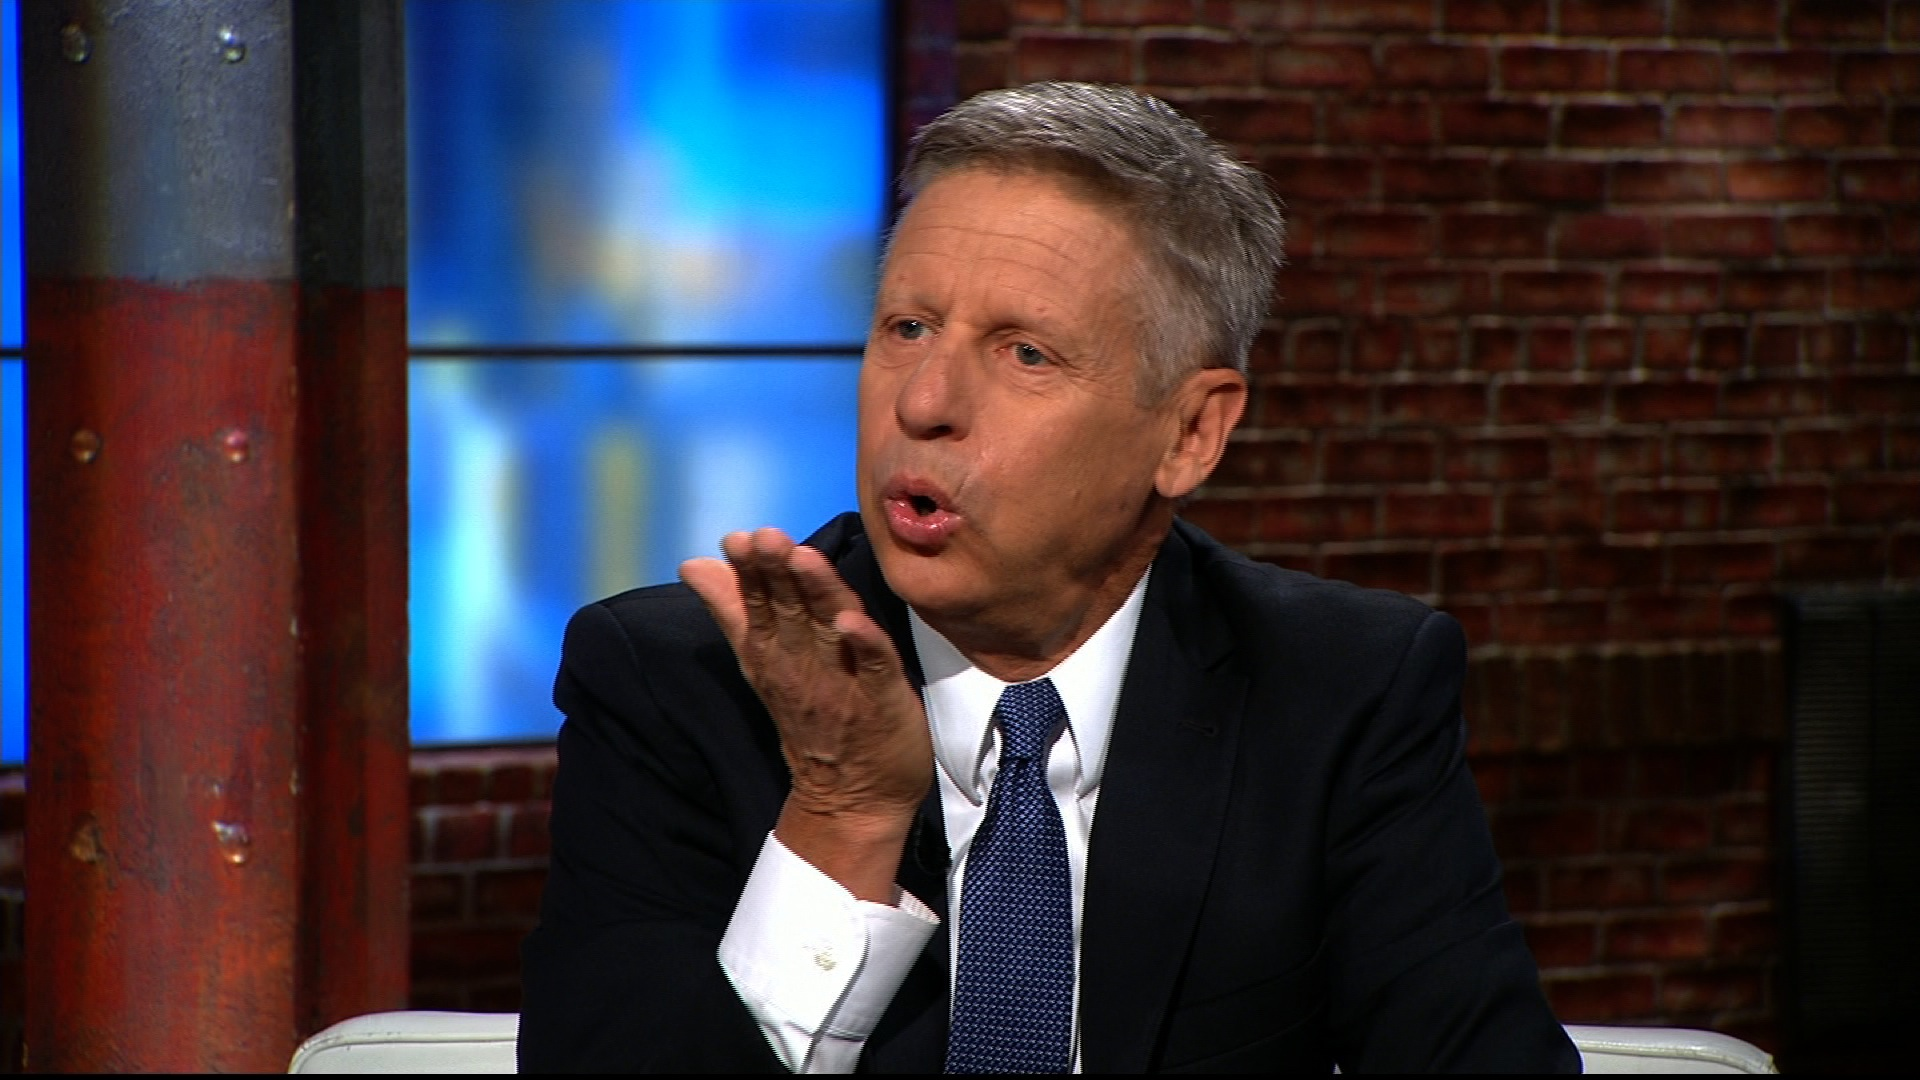 160531075706 gary johnson libertarian donald trump border wall racist kiss sot 00005509 gary johnson blows donald trump a kiss cnn video